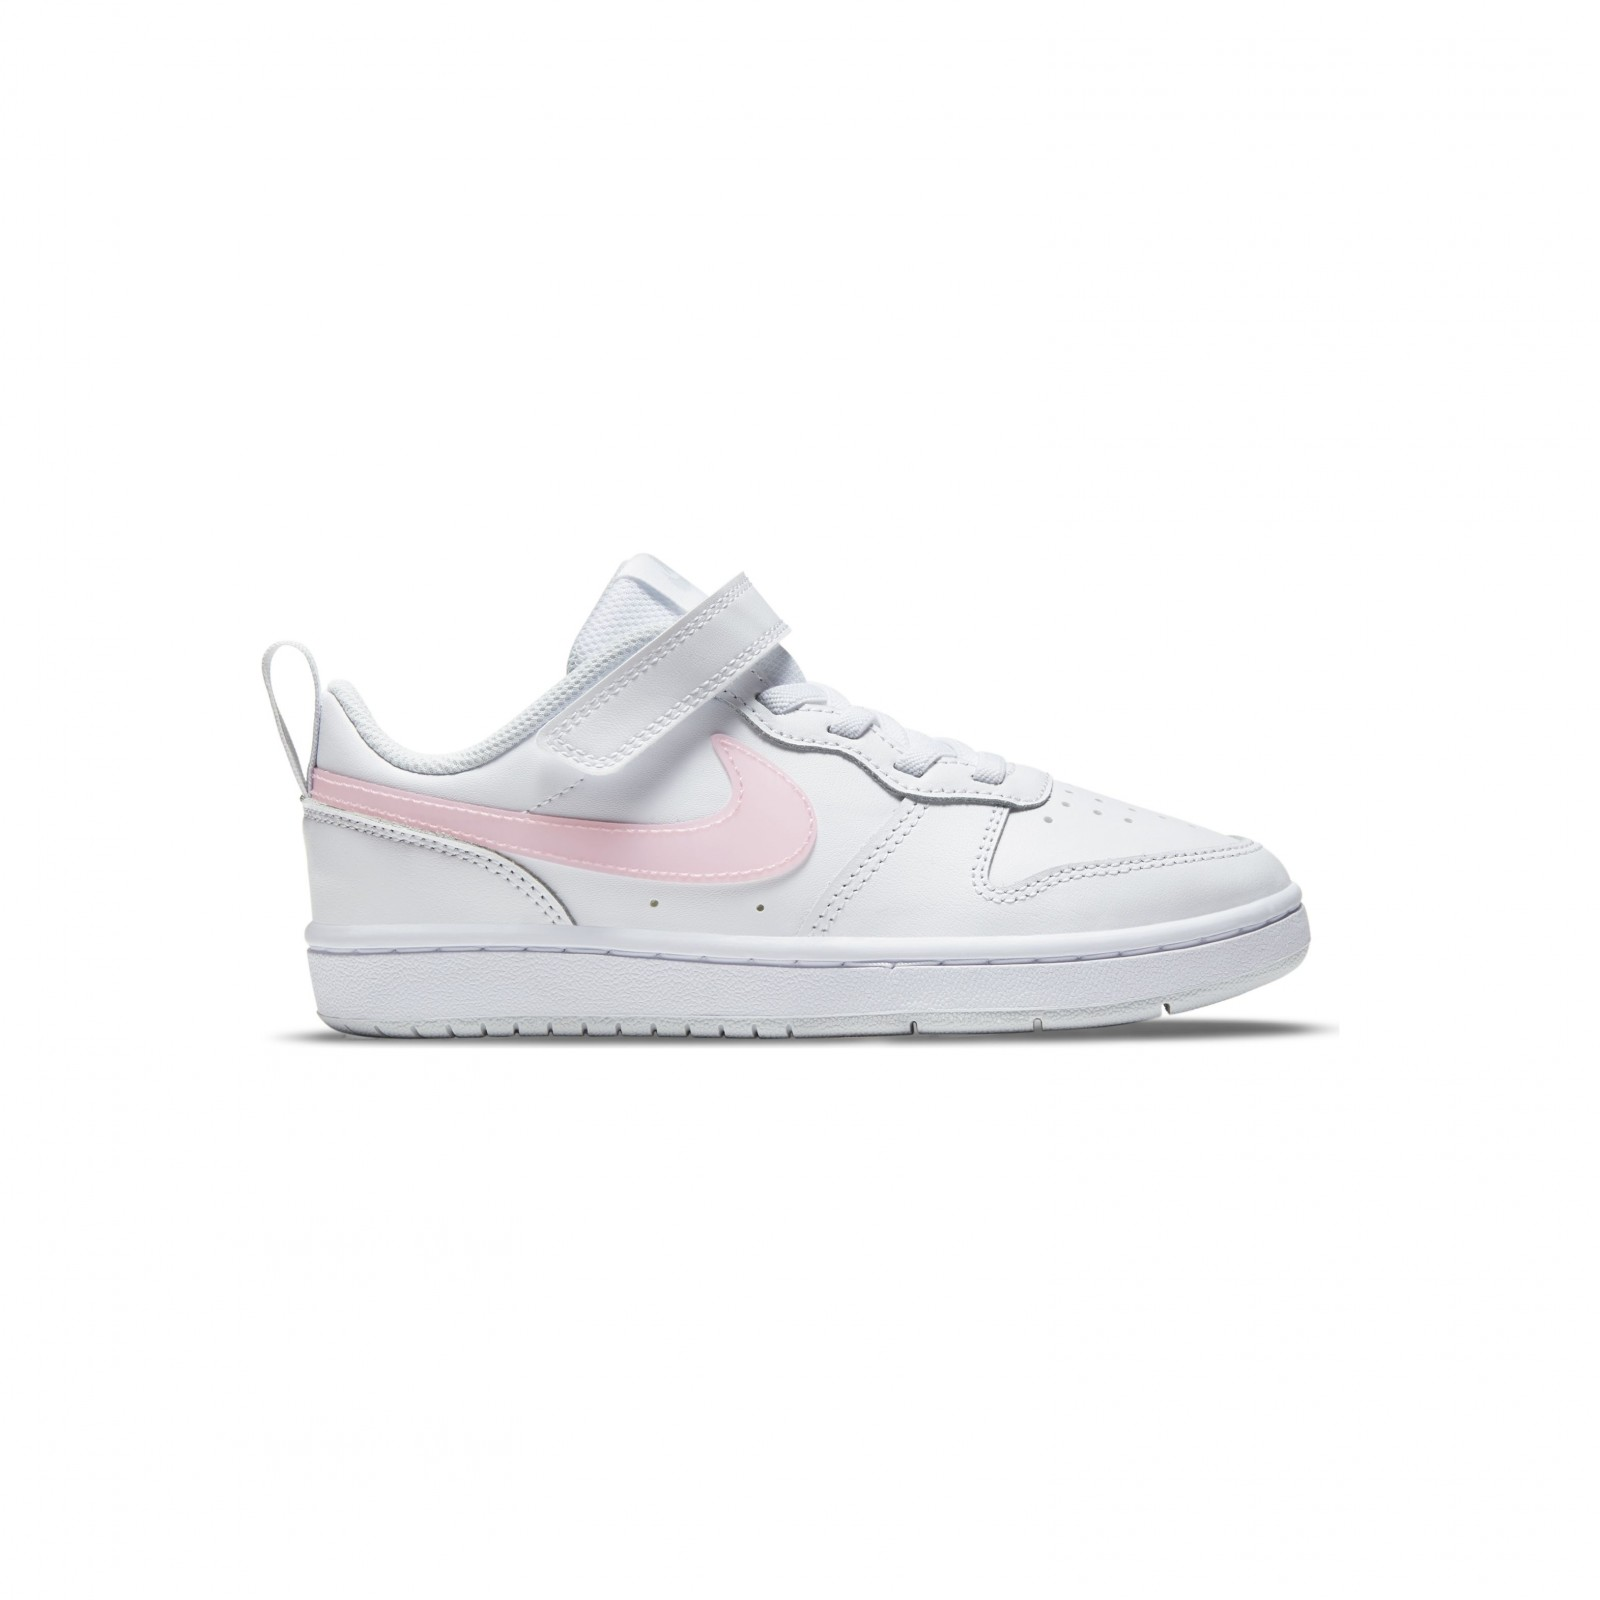 Nike Court Borough Low 2 WHITE/ARCTIC PUNCH-LT ARMORY BLUE